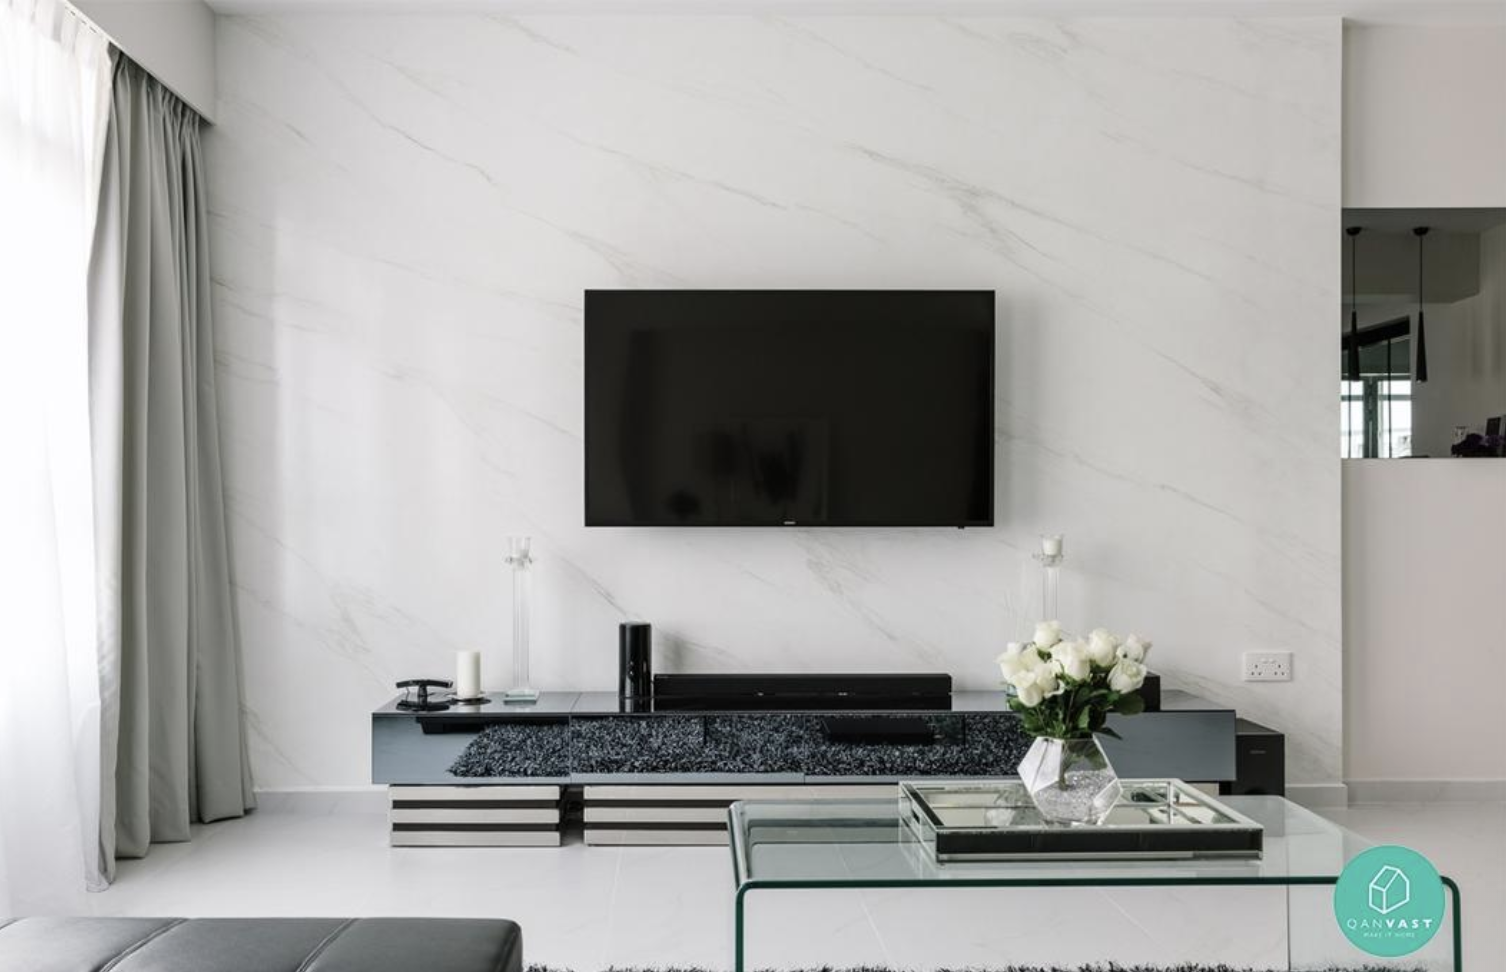 Marble TV feature wall + mounted TV (no console) | wallmount ...